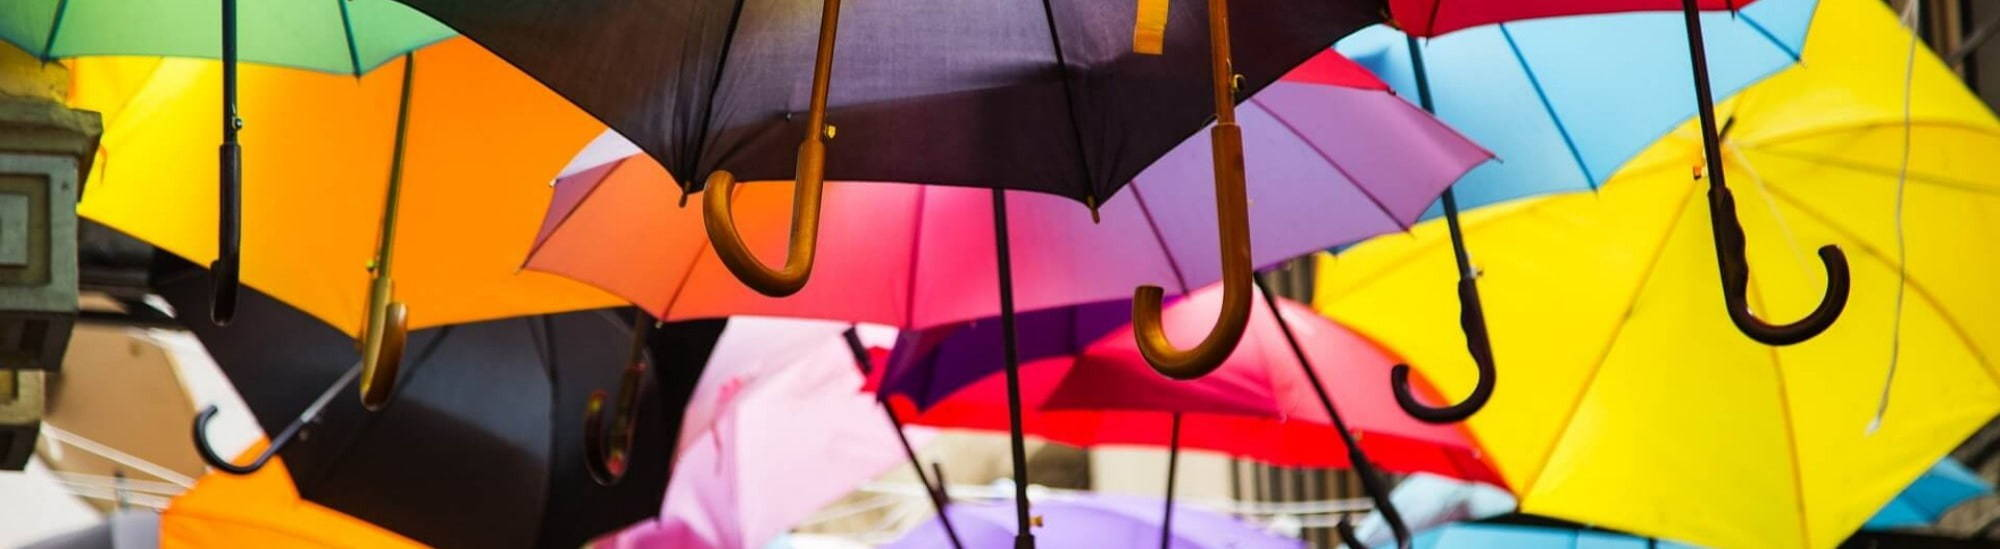 Colourful Umbrellas Suspended in the Air